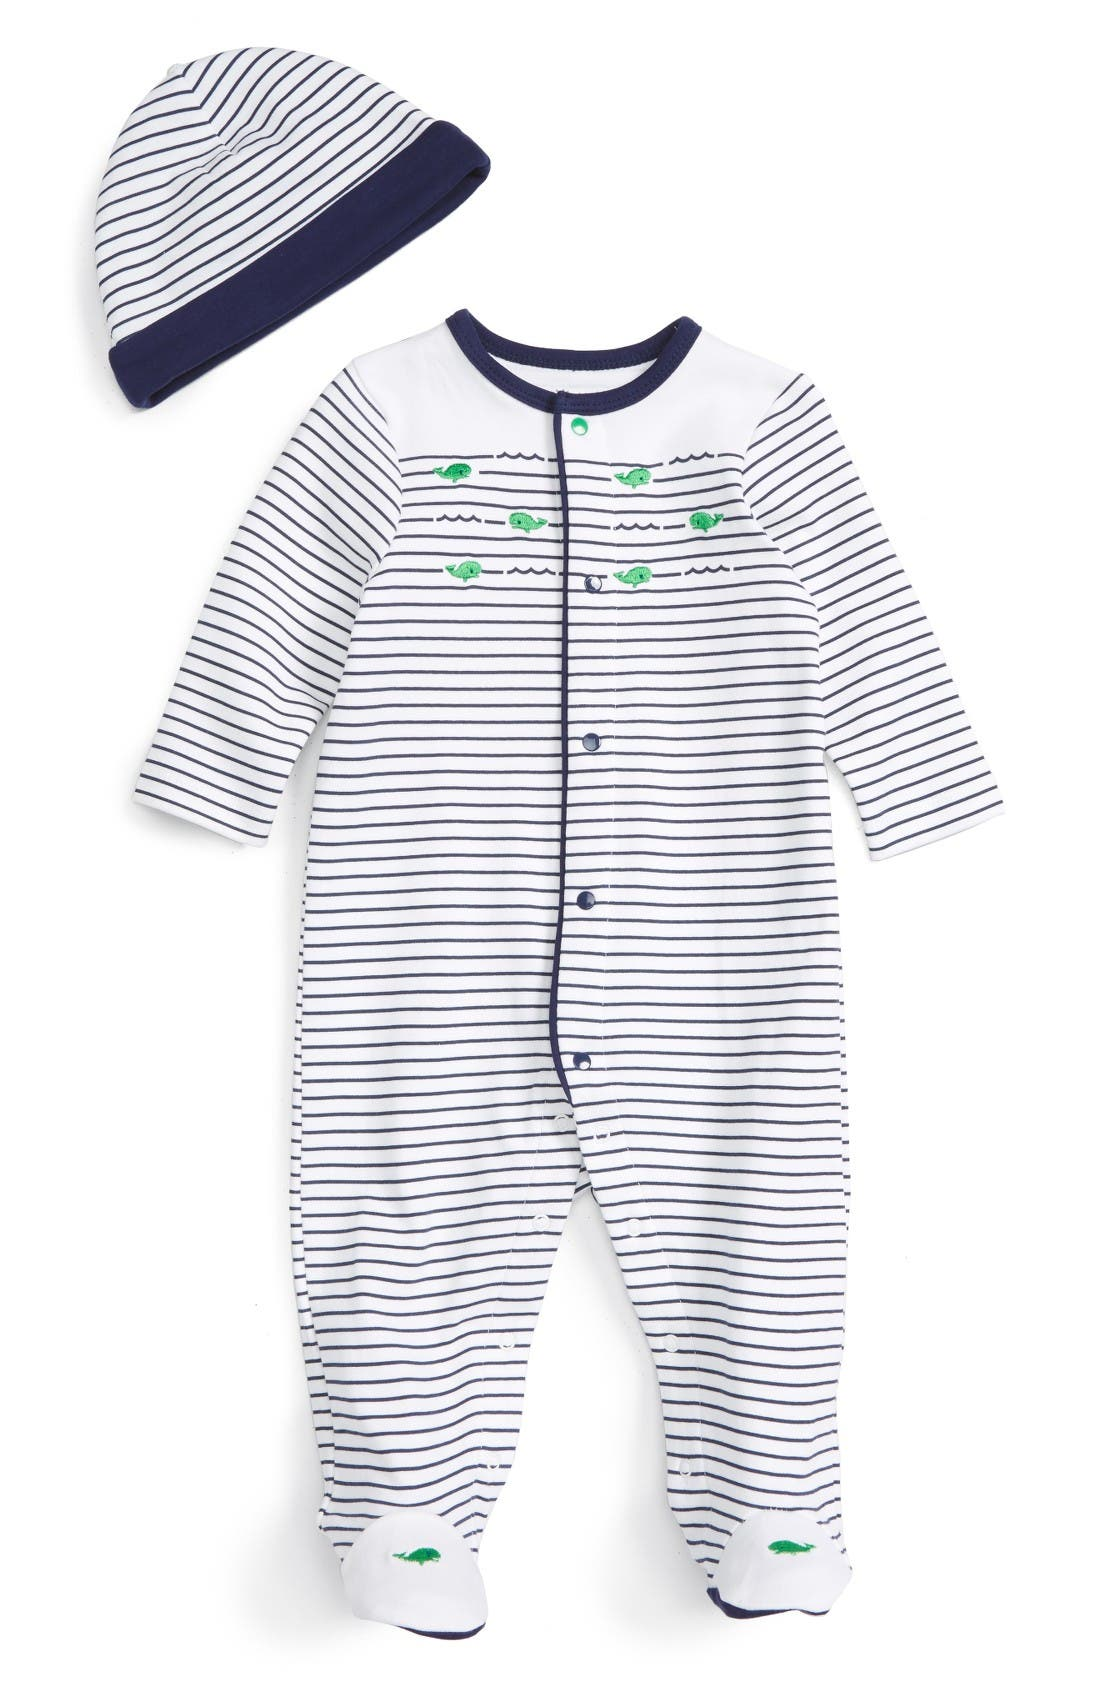 Alternate Image 1 Selected - Little Me Whale Stripe Footie & Beanie Set (Baby Boys)